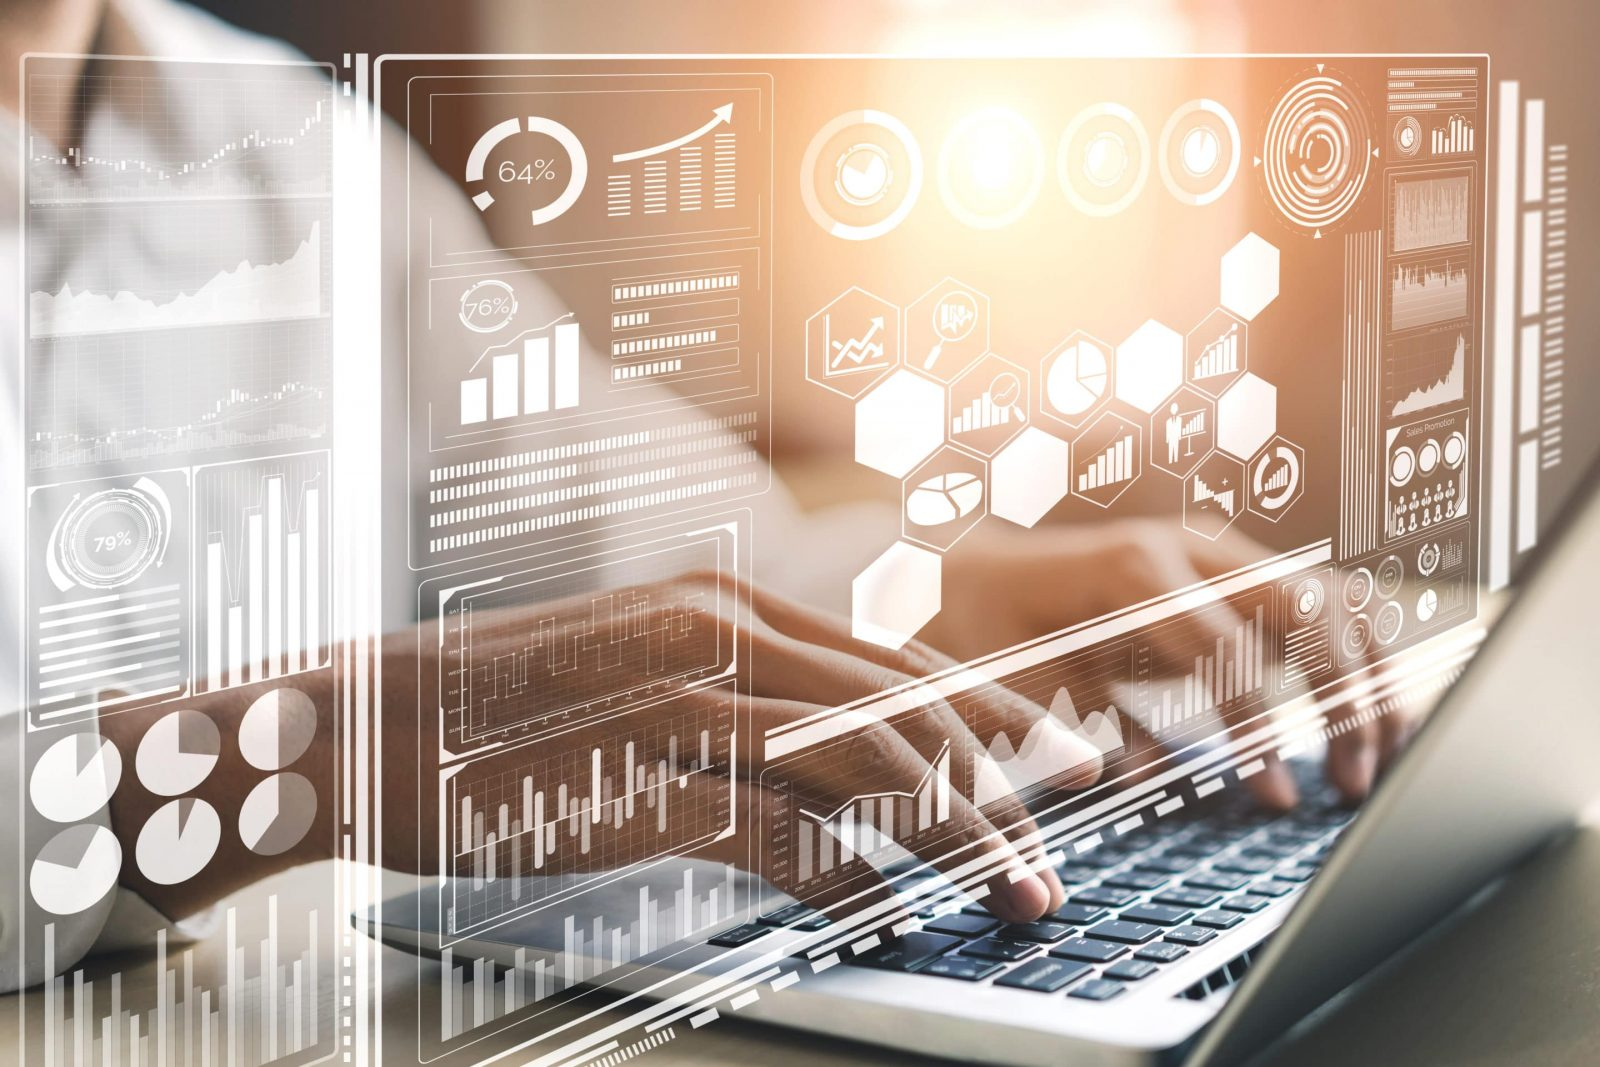 Data Analyst Careers For Business Management Degree Graduates